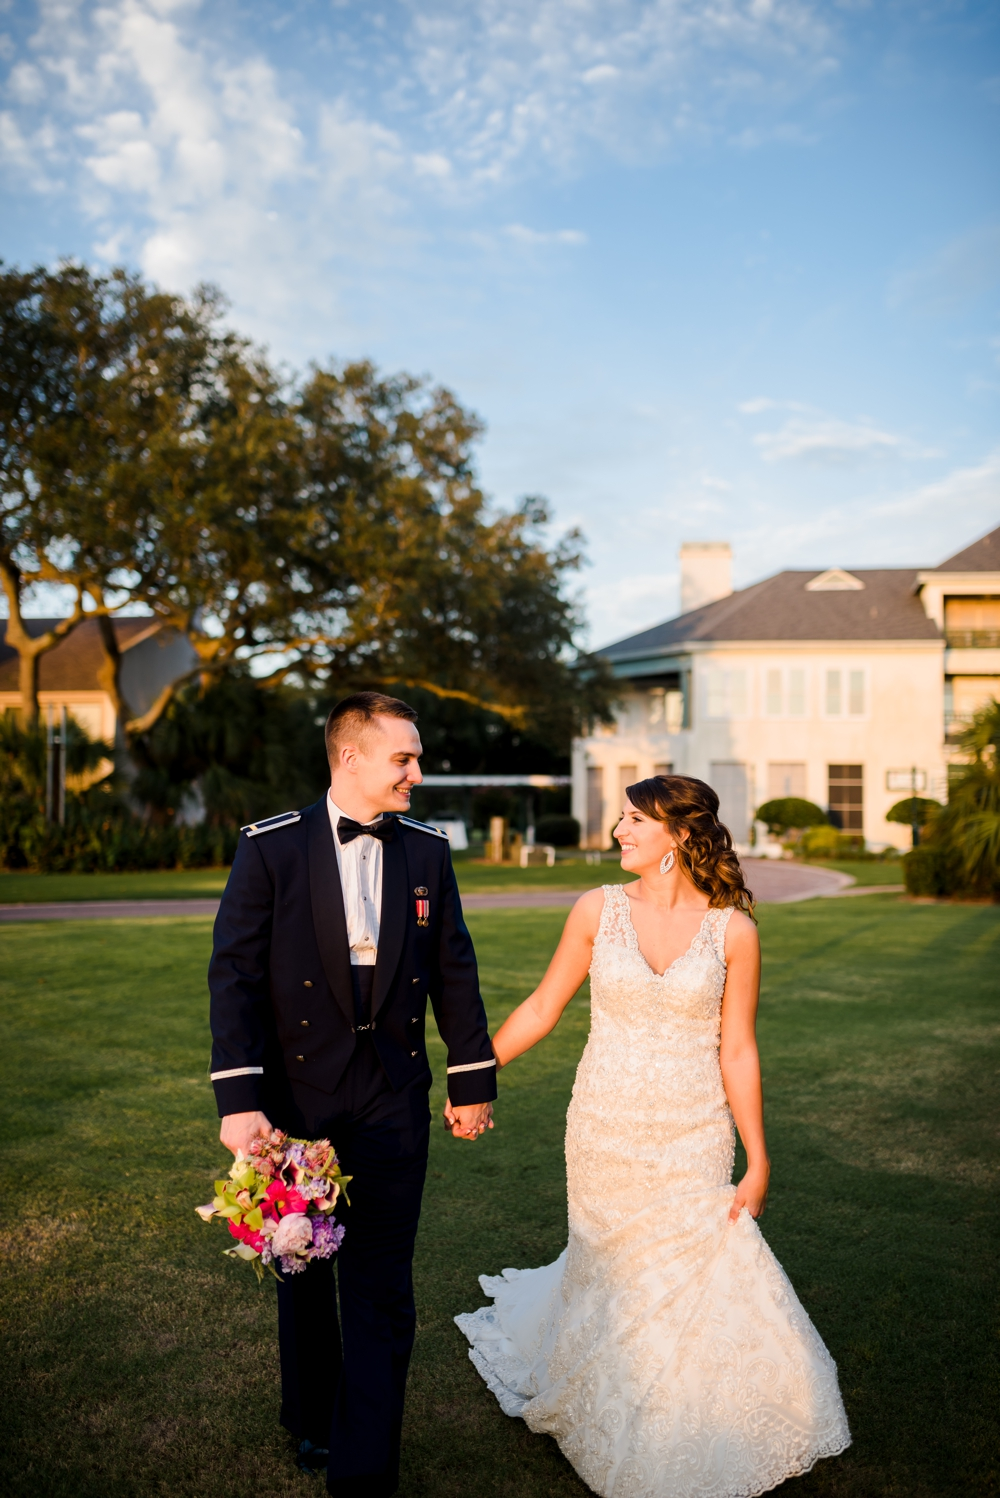 wallin-florida-wedding-photographer-kiersten-grant-163.jpg